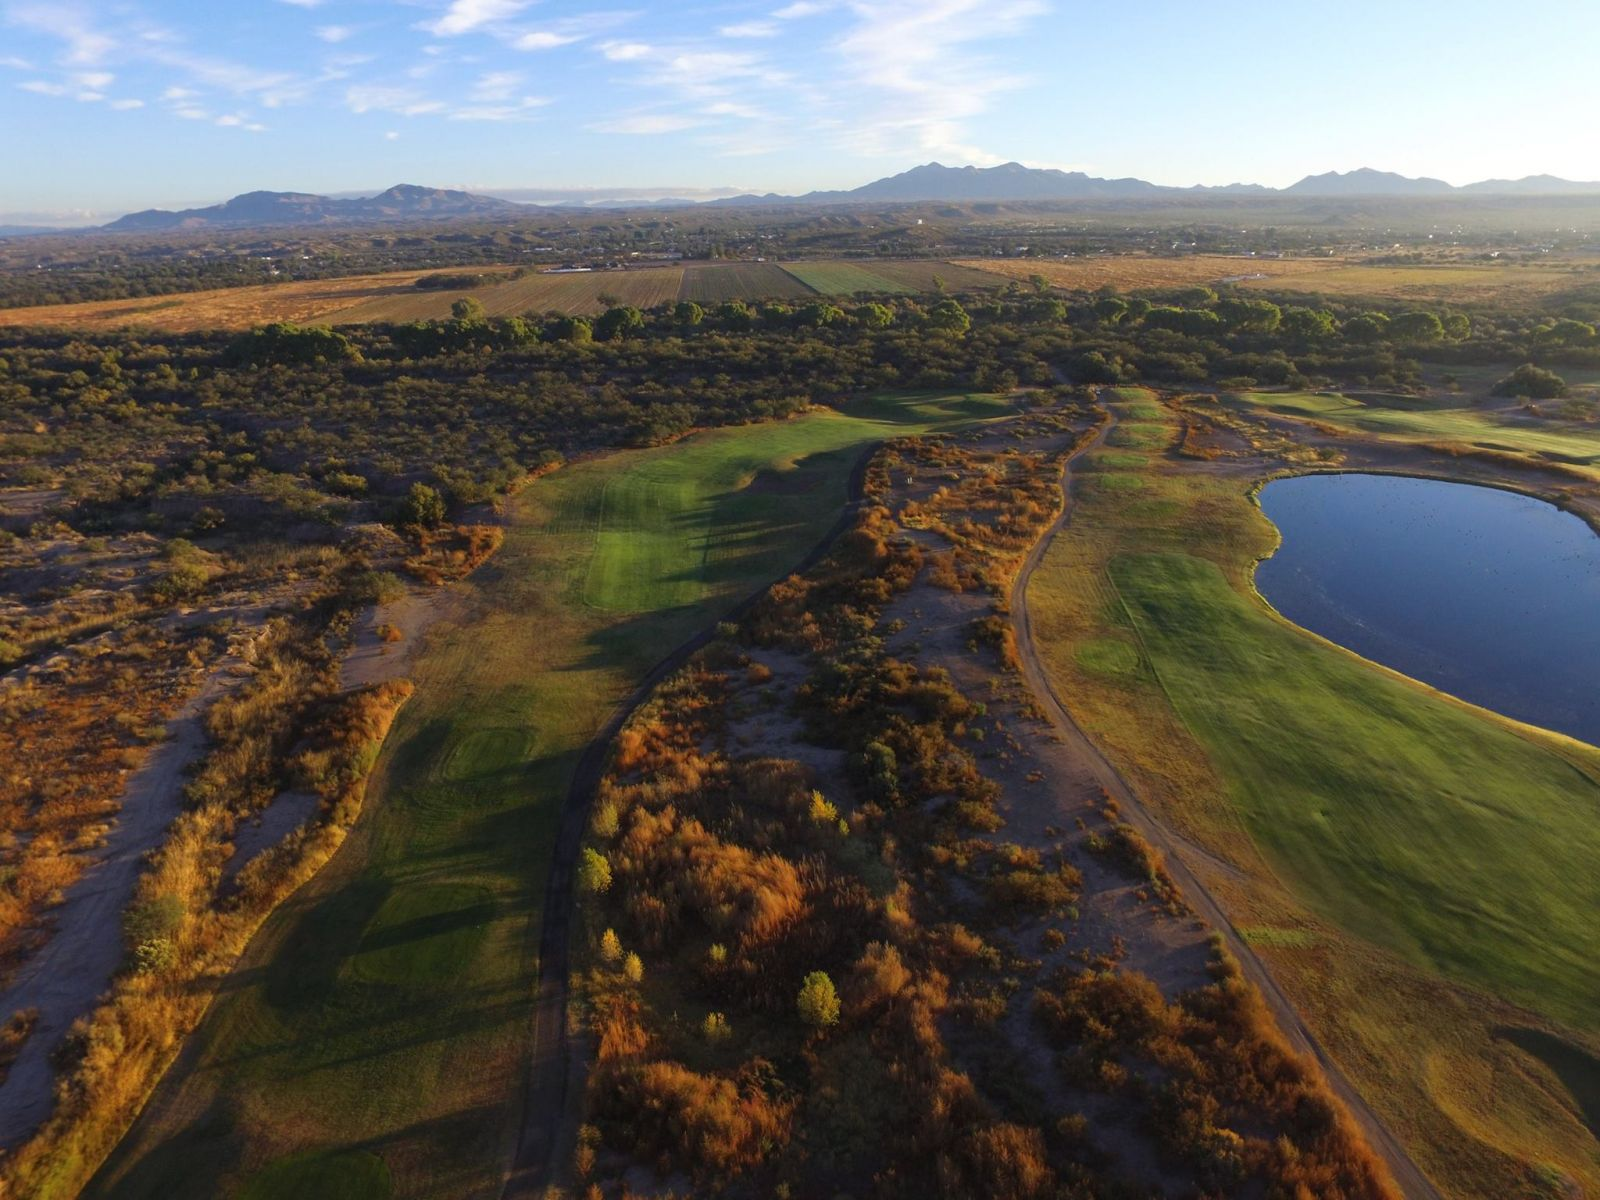 Aerial shot of San Pedro Golf Course in Benson, Arizona